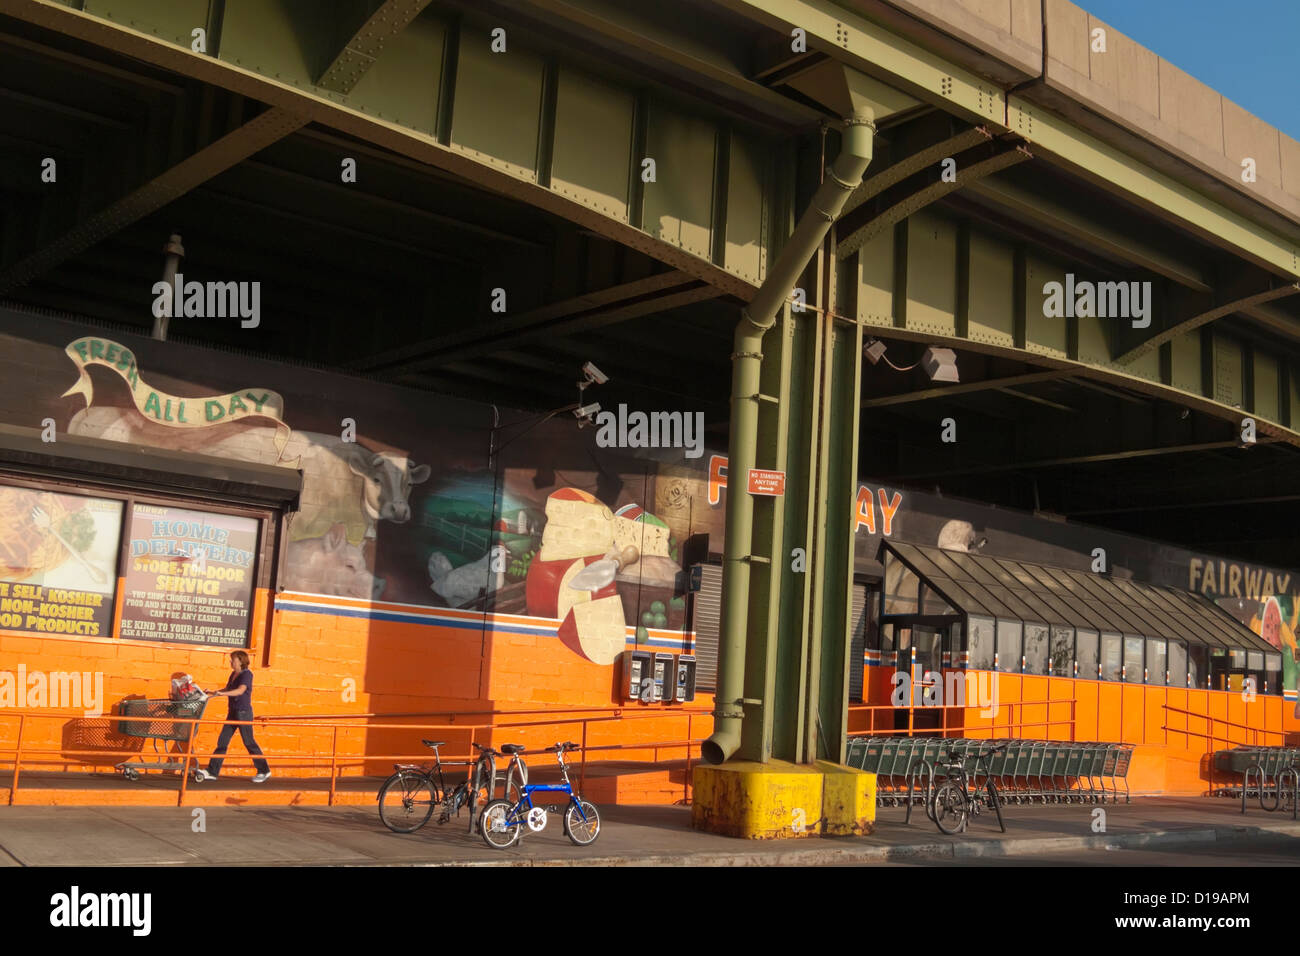 Fairway Supermarket, tucked under the West Side Highway (Henry Hudson Parkway) in Harlem. - Stock Image